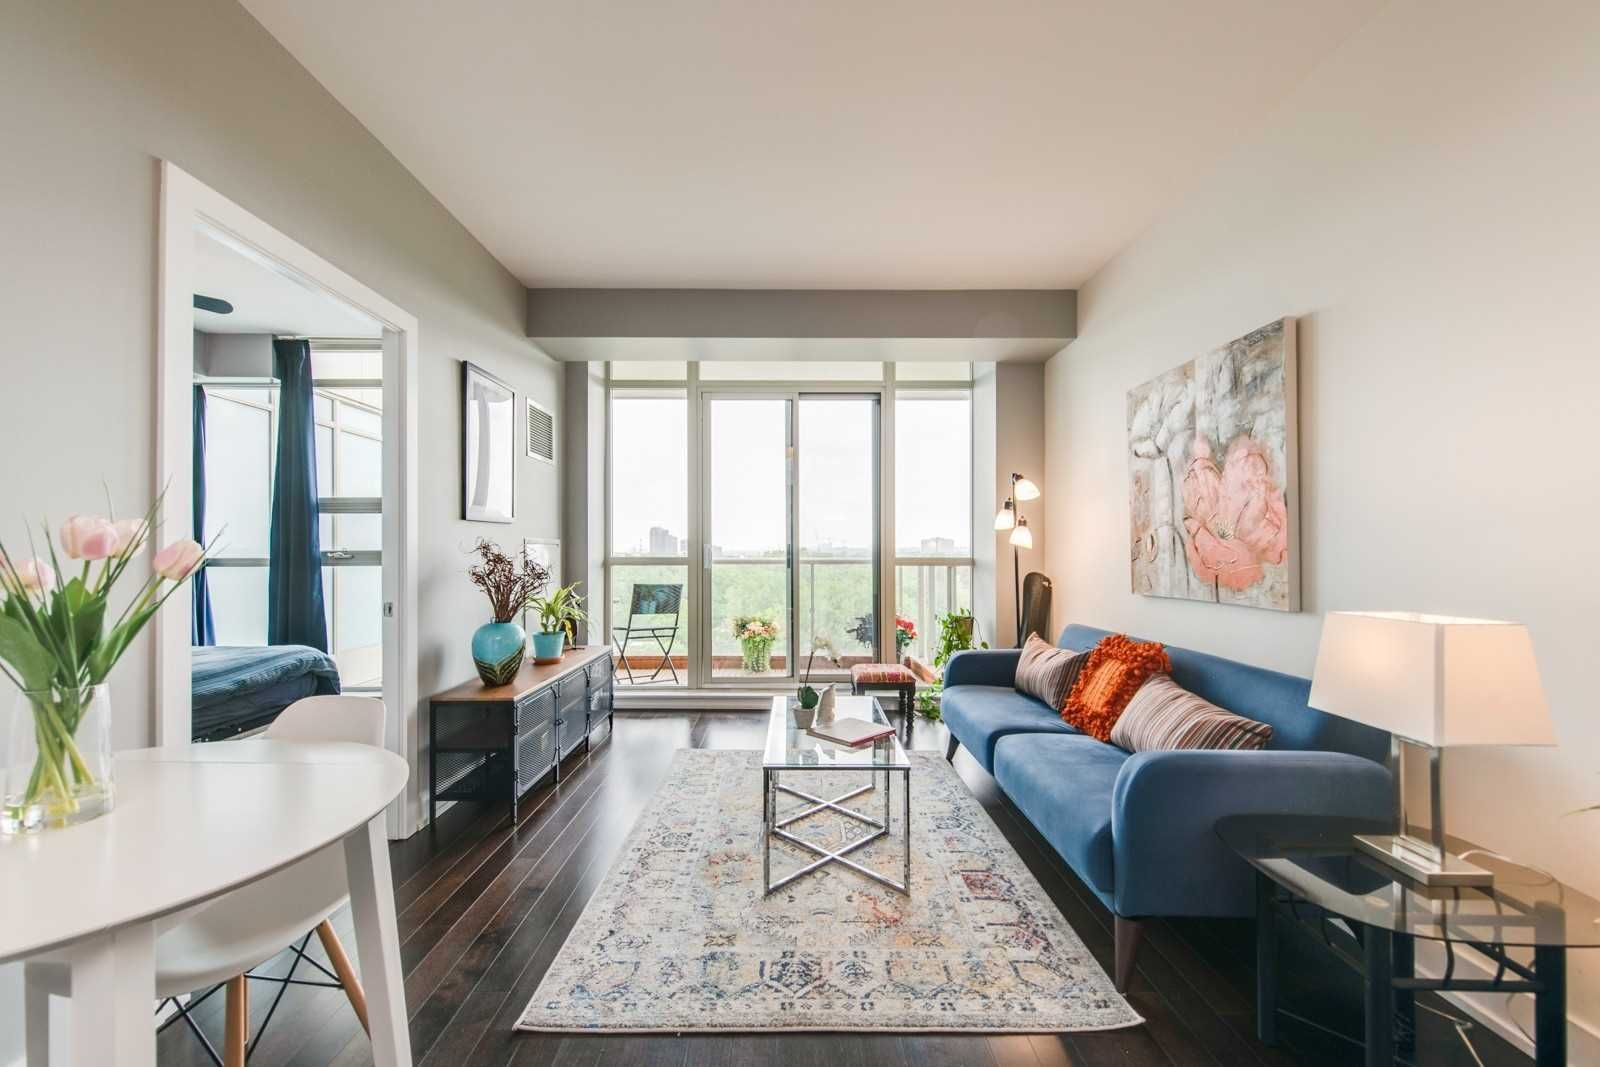 1638 Bloor St W, unit 1007 for sale in Toronto - image #1